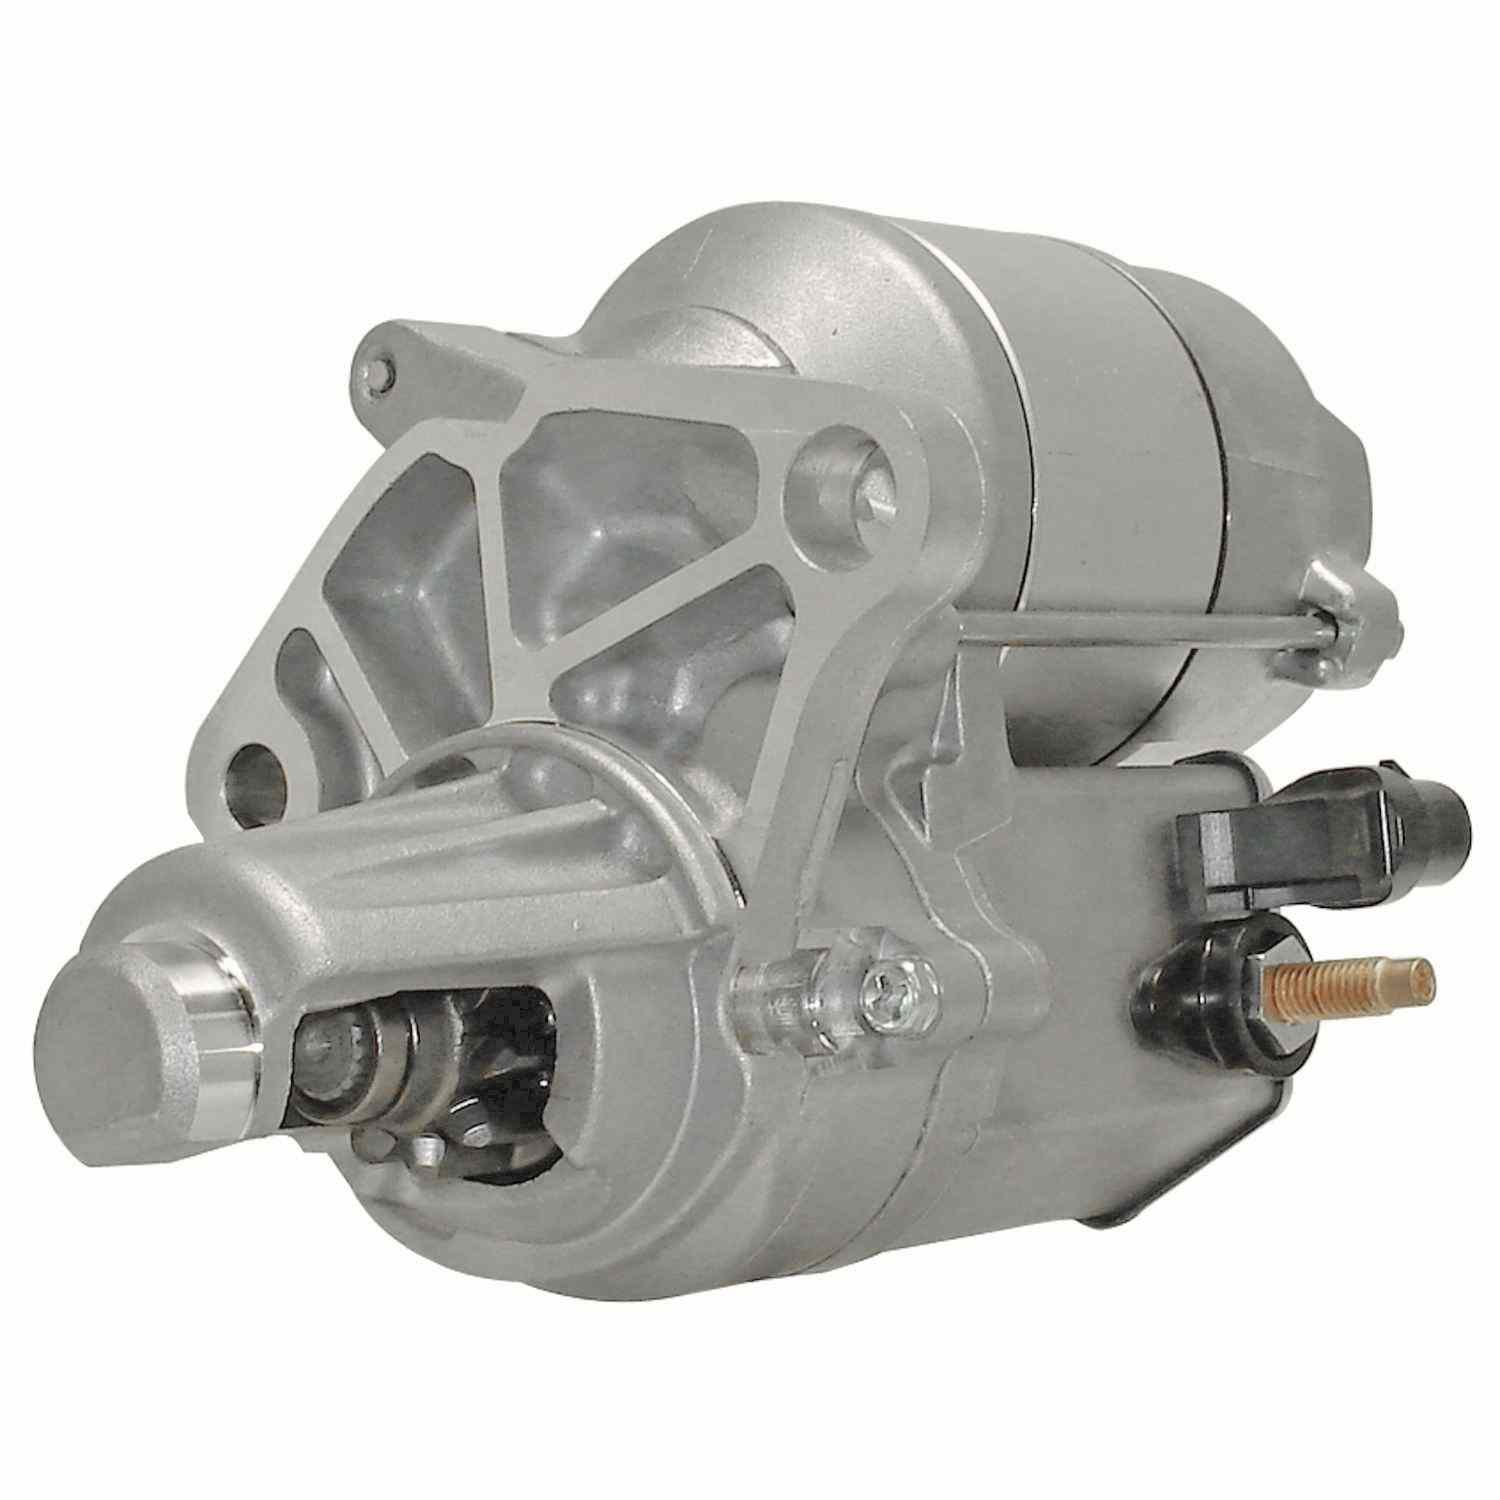 ACDELCO PROFESSIONAL - Reman Starter Motor - DCC 336-1722